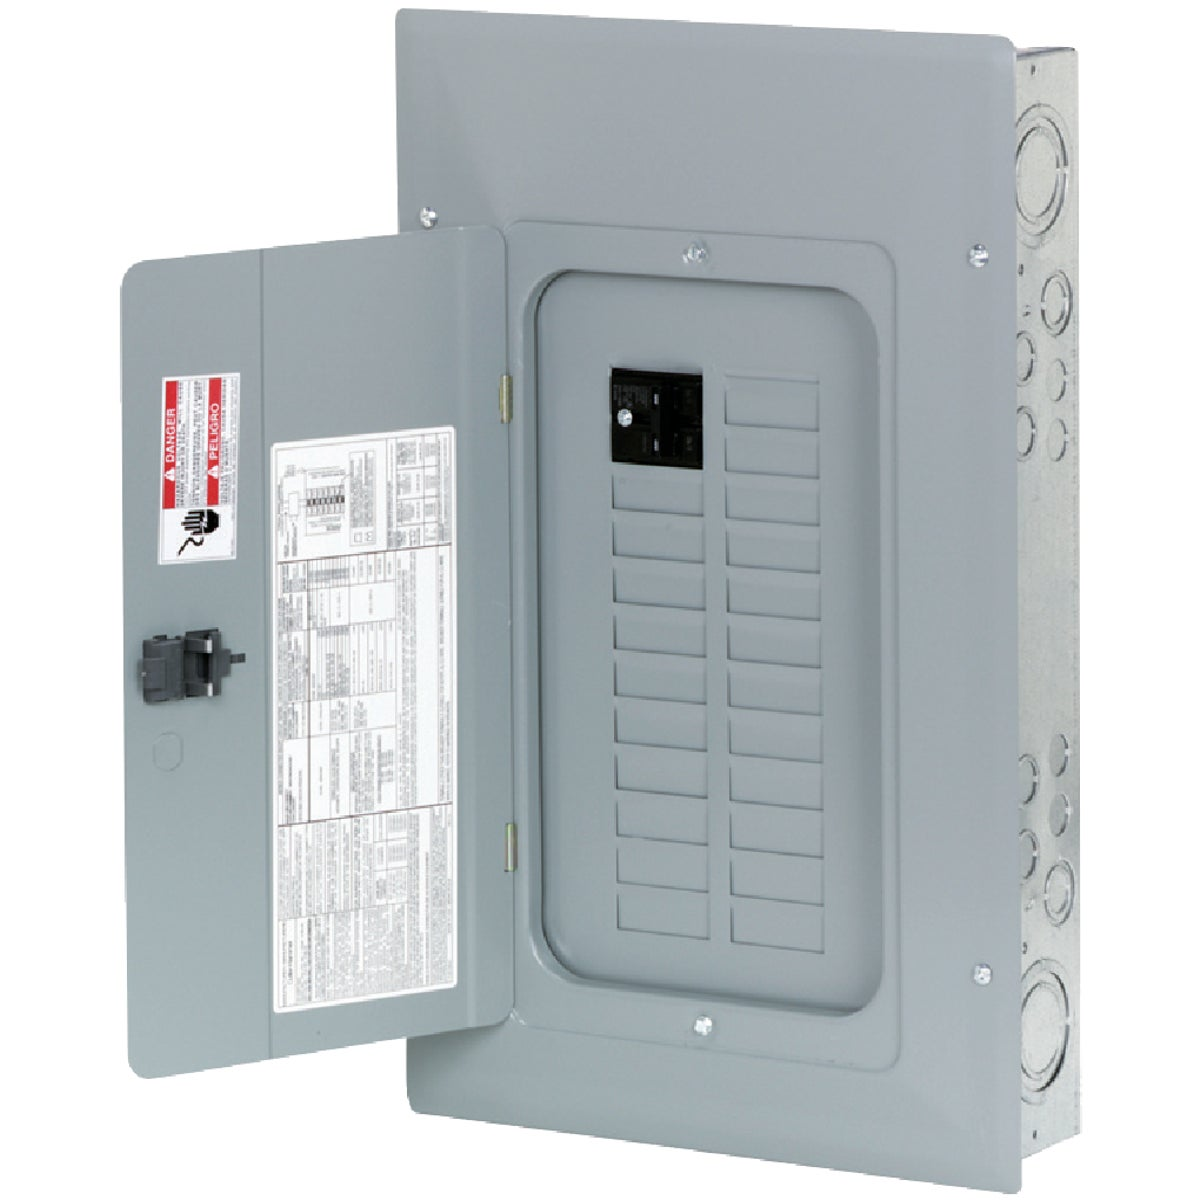 100A LOAD CENTER - BR2020B100 by Eaton Corporation